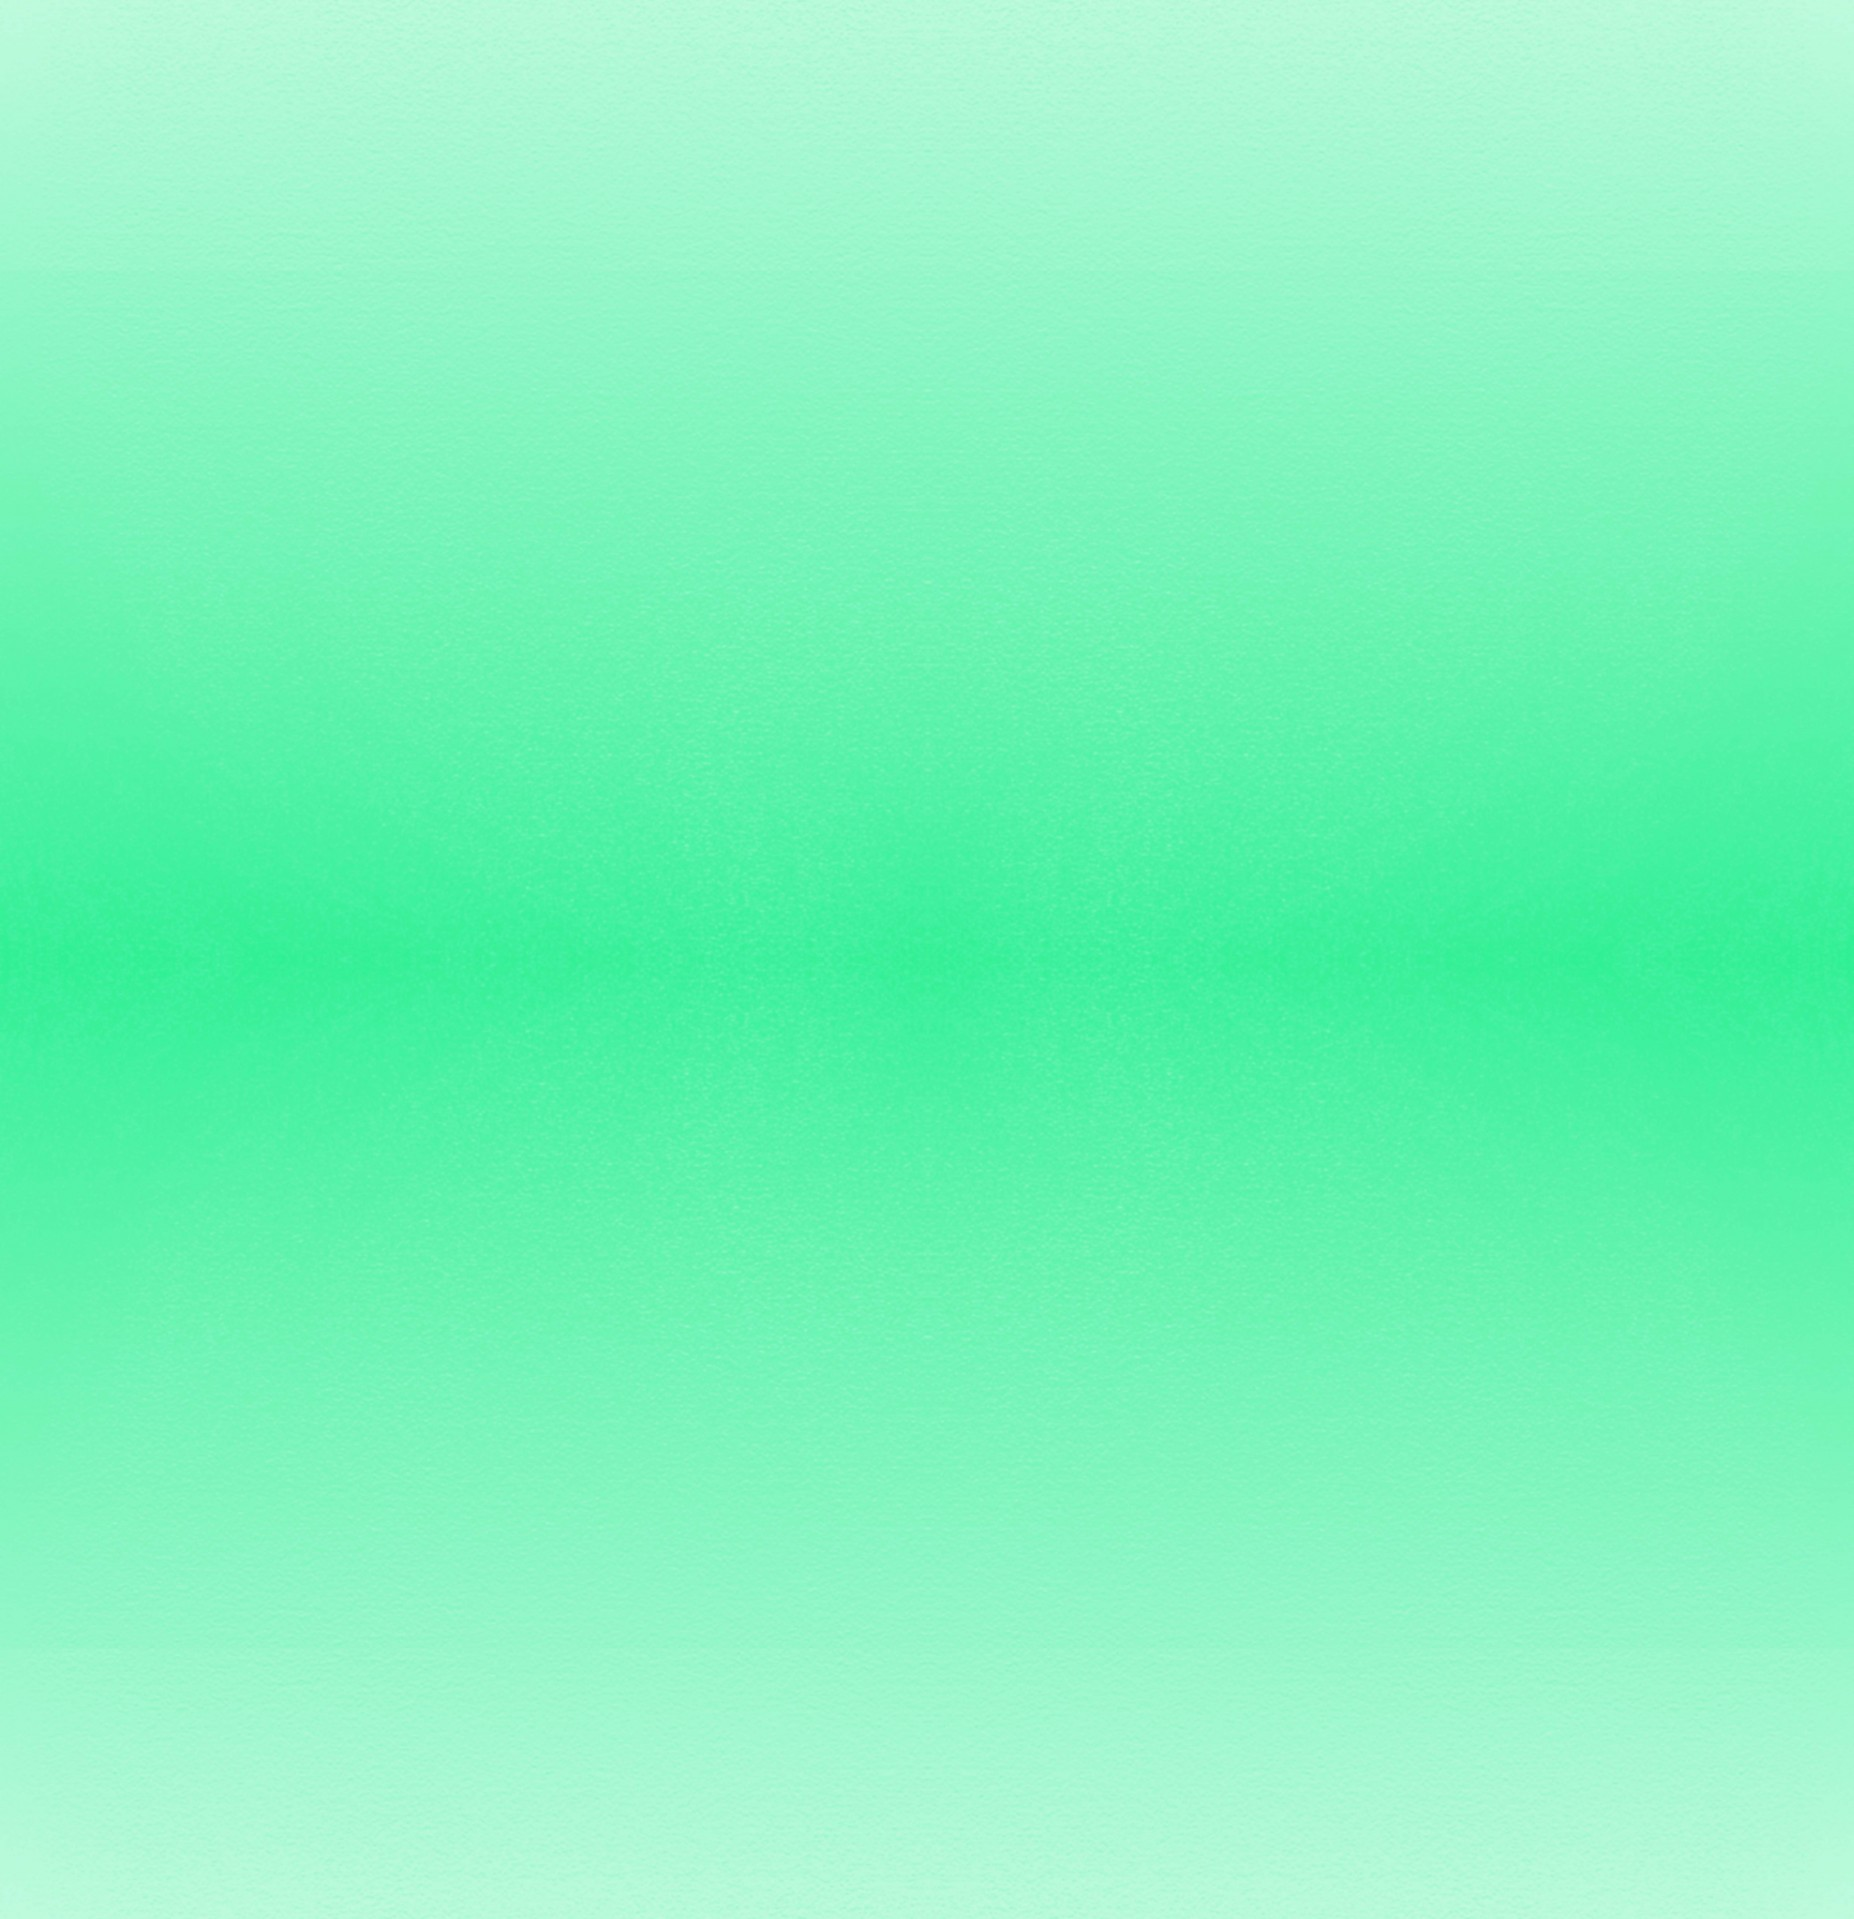 Shutterstock Hd Wallpapers Mint Green Diffused Background Free Stock Photo Public